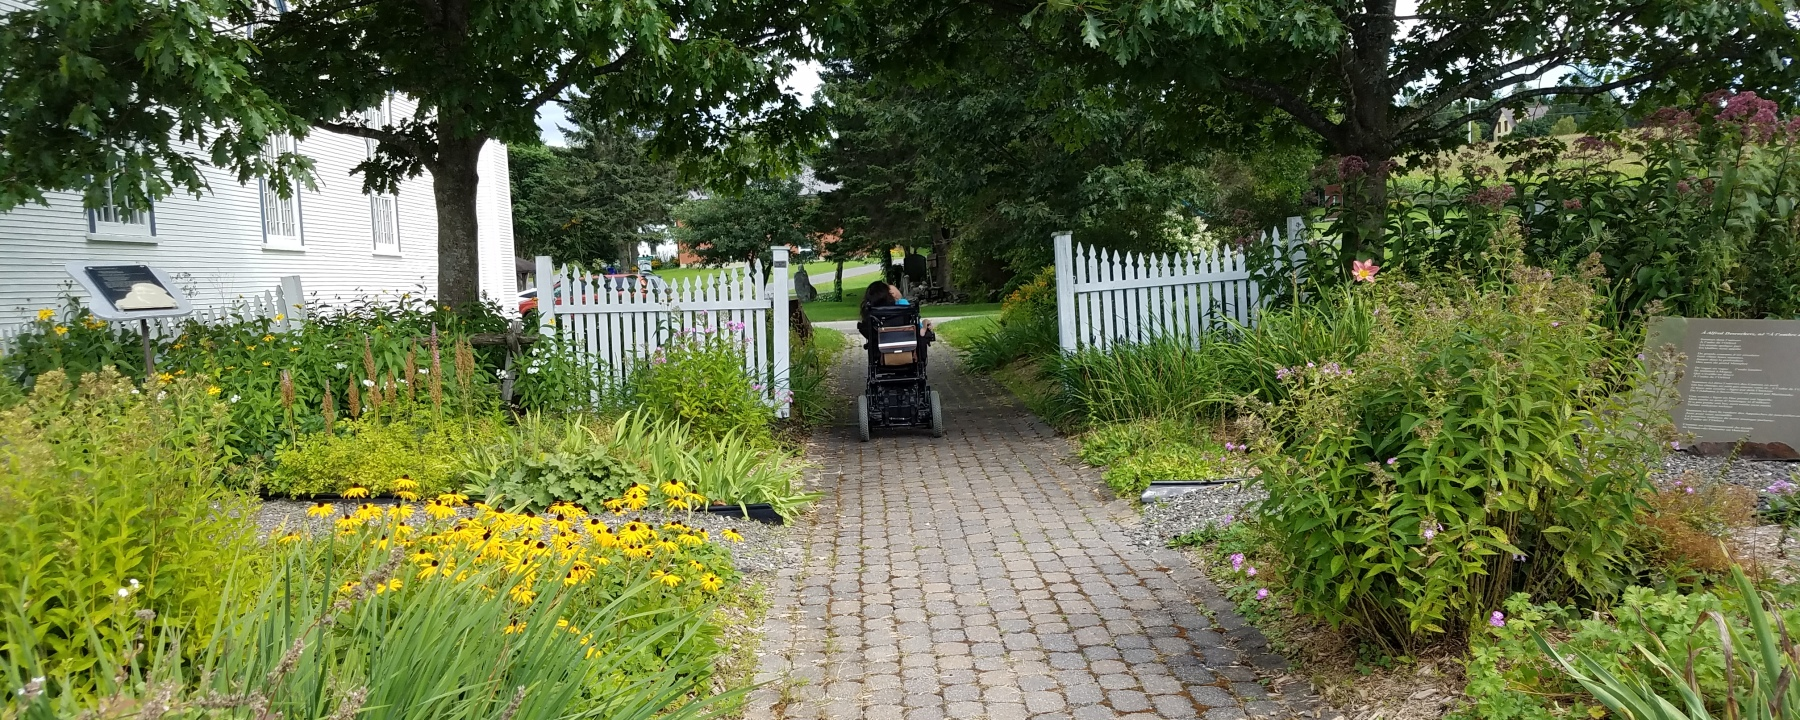 Pilgrimage, Canada, woman in wheelchair, St-Venant-de-Paquette